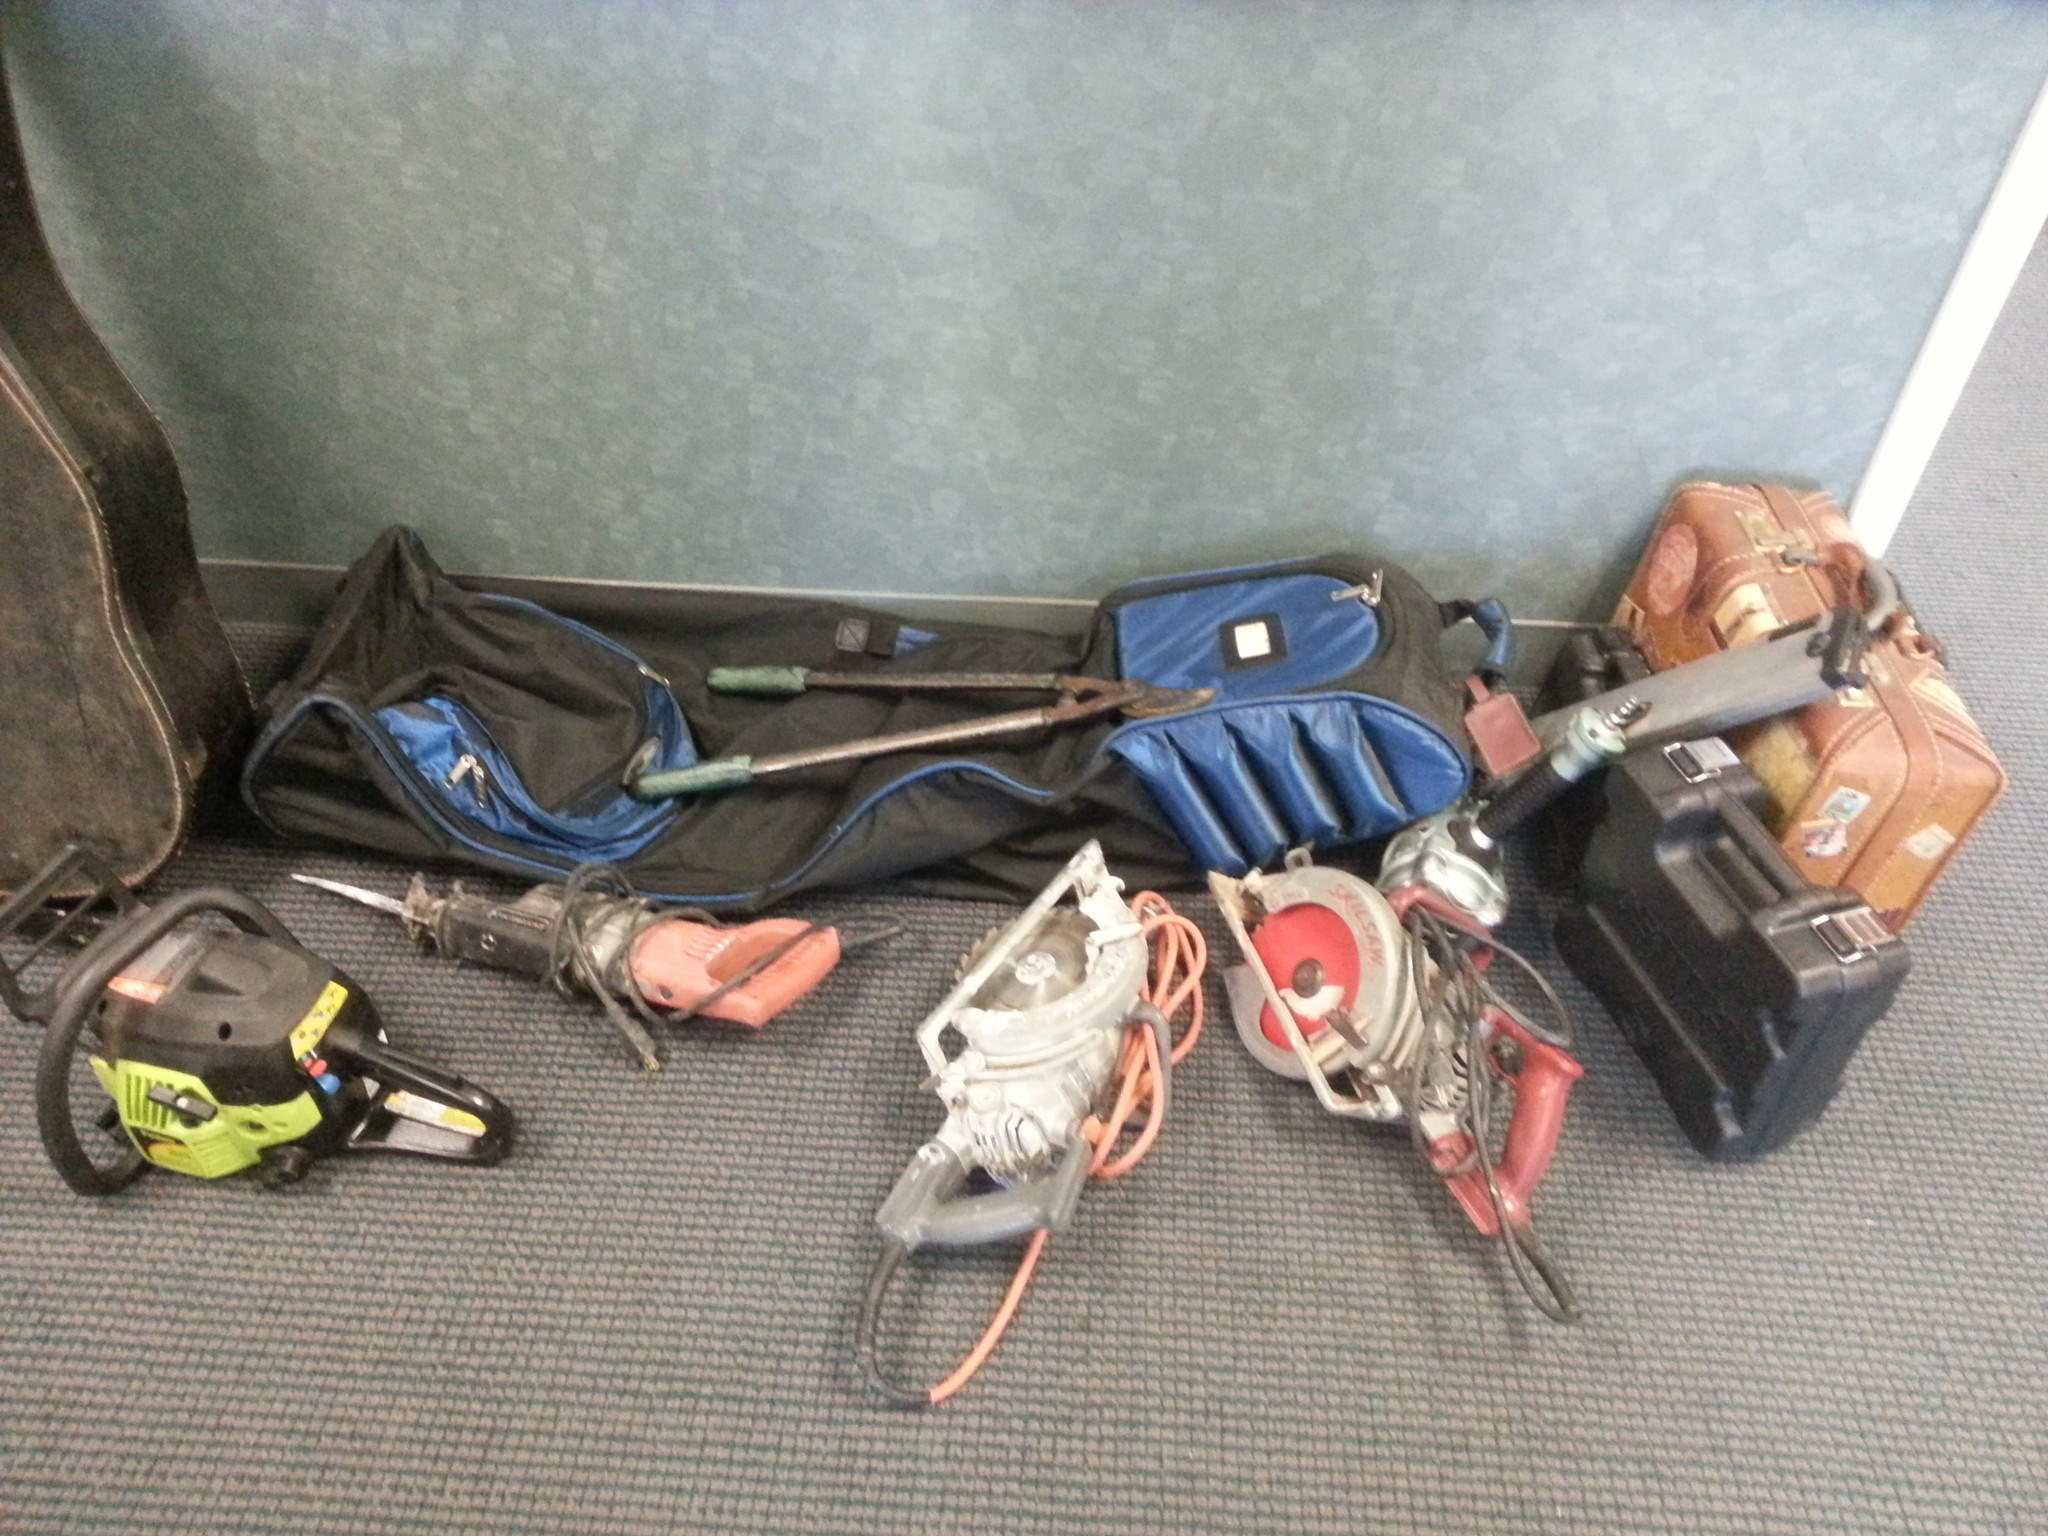 Police recovered stolen property from several locations in the city after the arrests of a man and woman.